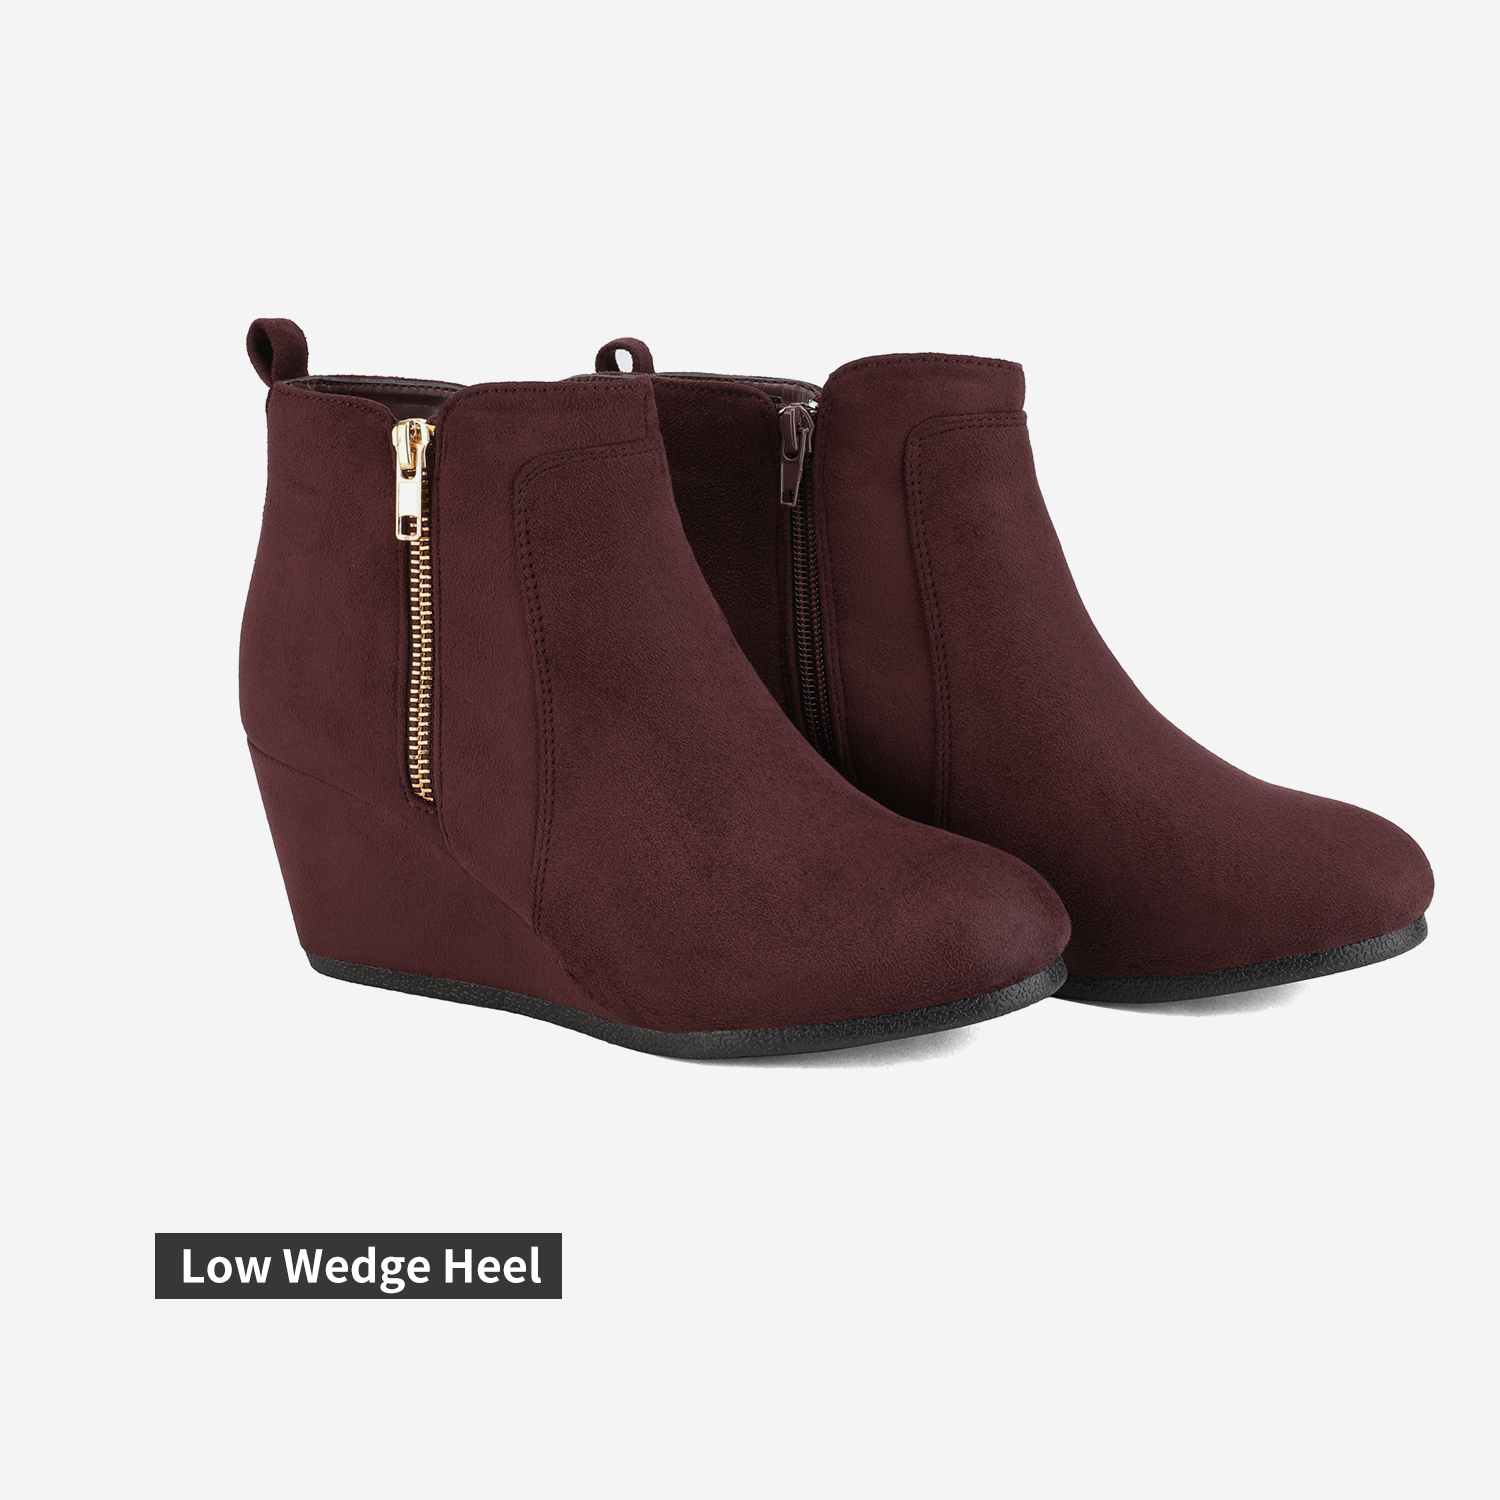 DREAM PAIRS Womens Low Wedge Ankle Boots Round Toe Suede Zip Winter Warm Booties